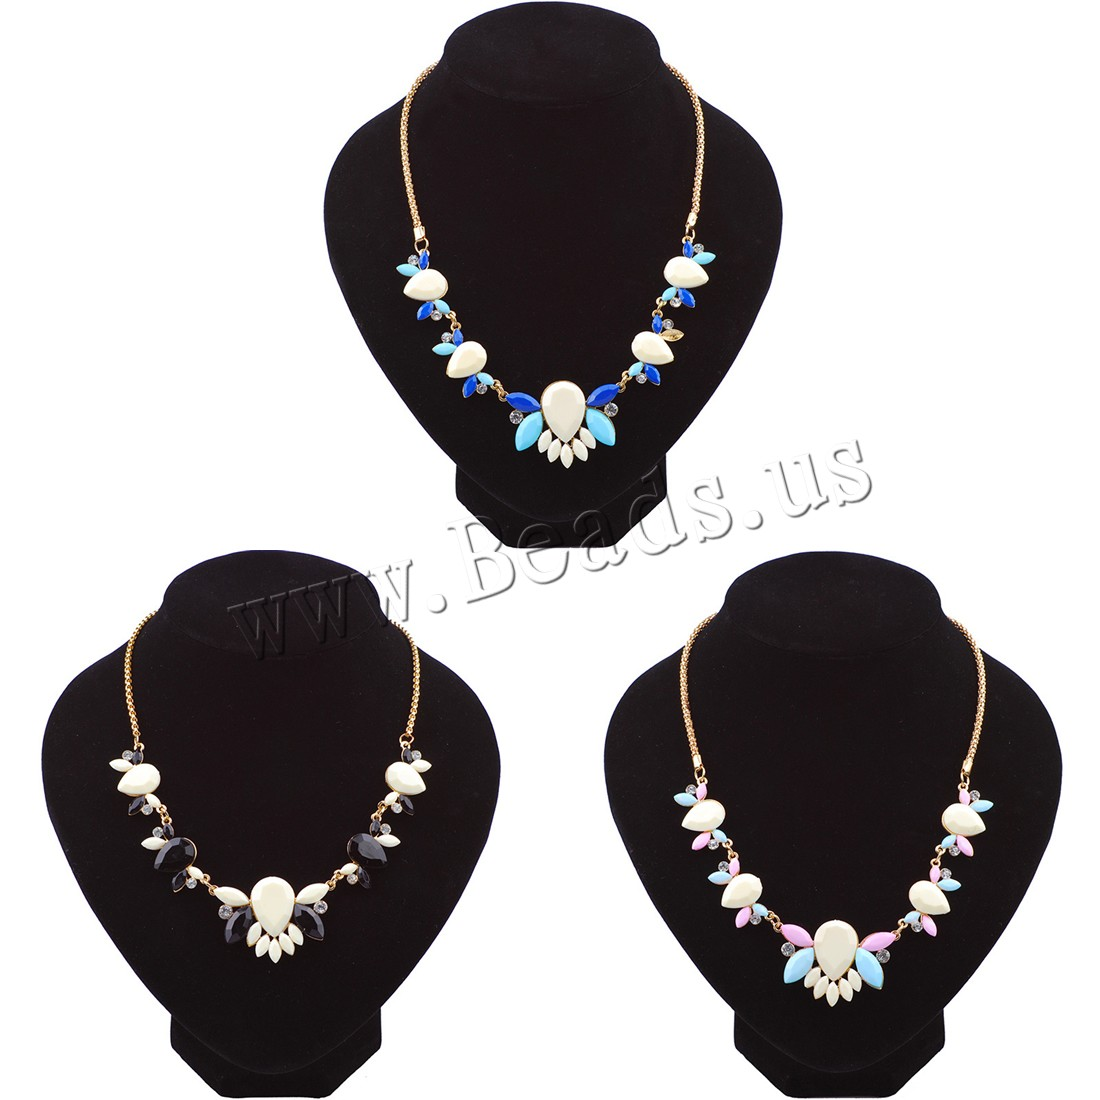 Buy Crystal Necklace Zinc Alloy Crystal 2inch extender chain rose gold color plated box chain & woman & faceted & rhinestone colors choice Sold Per Approx 19.6 Inch Strand